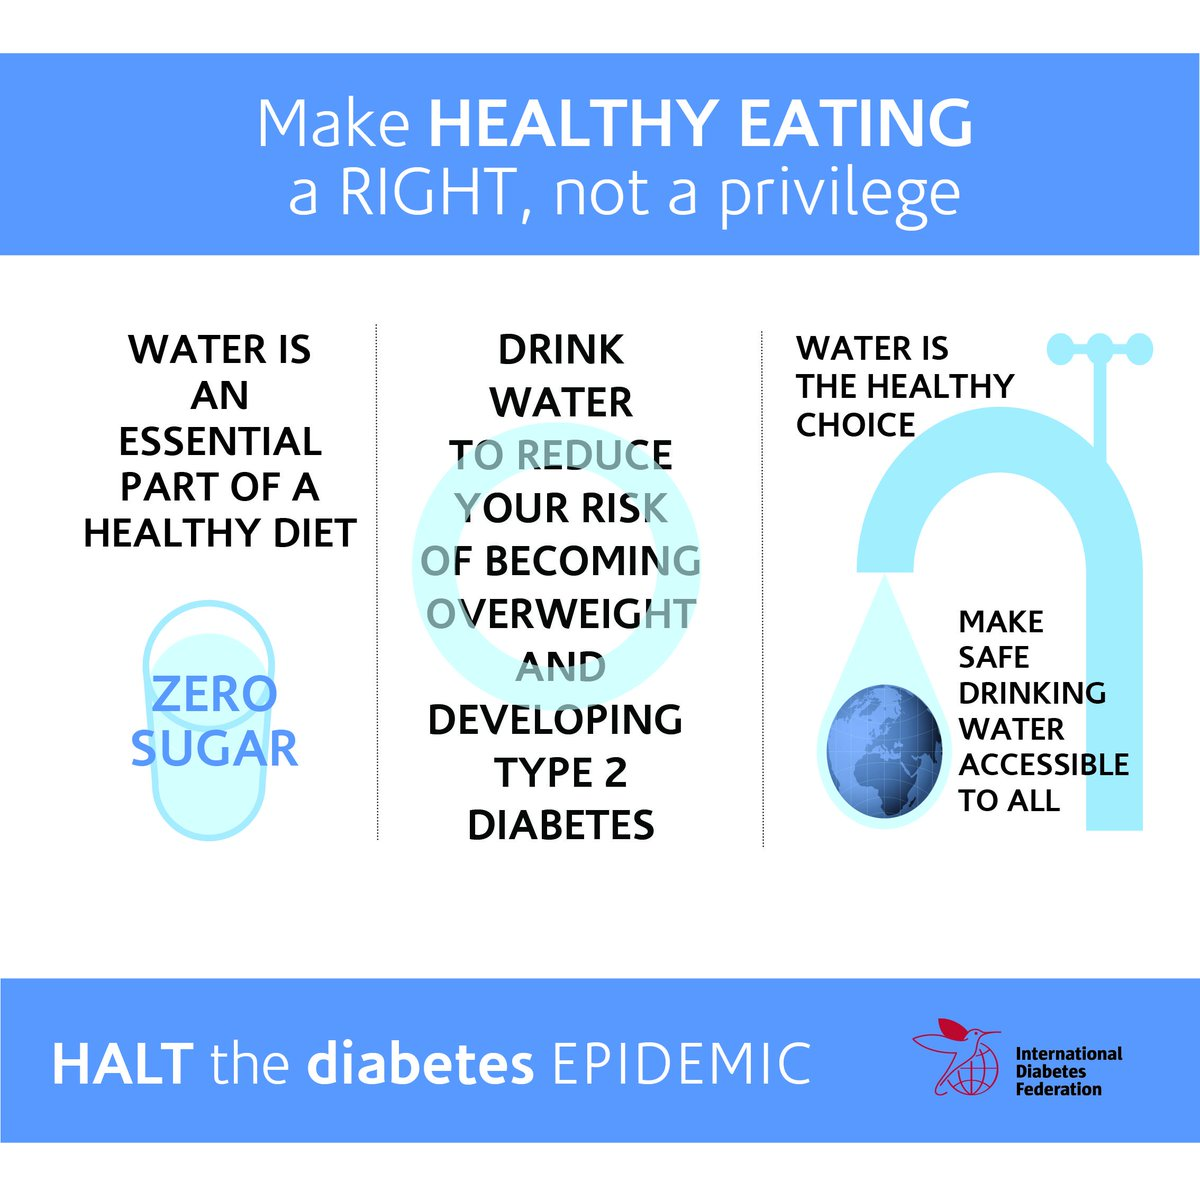 test Twitter Media - Drinking water is an essential part of a healthy diet to help prevent type 2 #diabetes and should be accessible to all  #WorldWaterDay https://t.co/Yb7H2fRvHt https://t.co/y9qweXyO4N